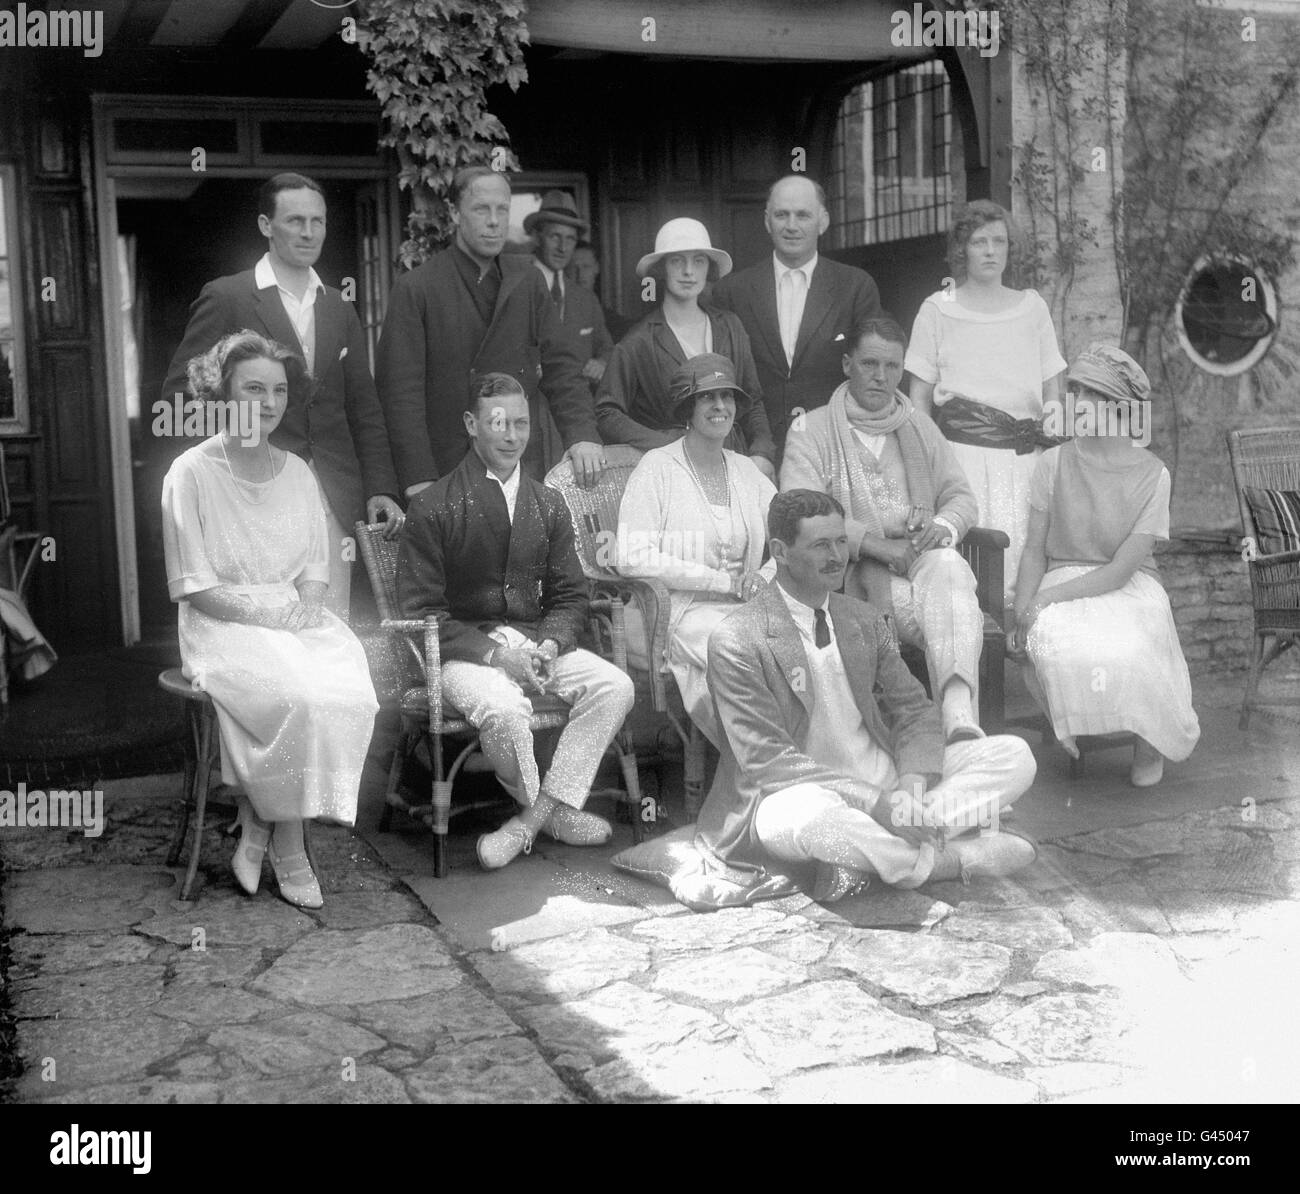 High Society - Viscount Birkenhead's Weekend Tennis Party - - Stock Image